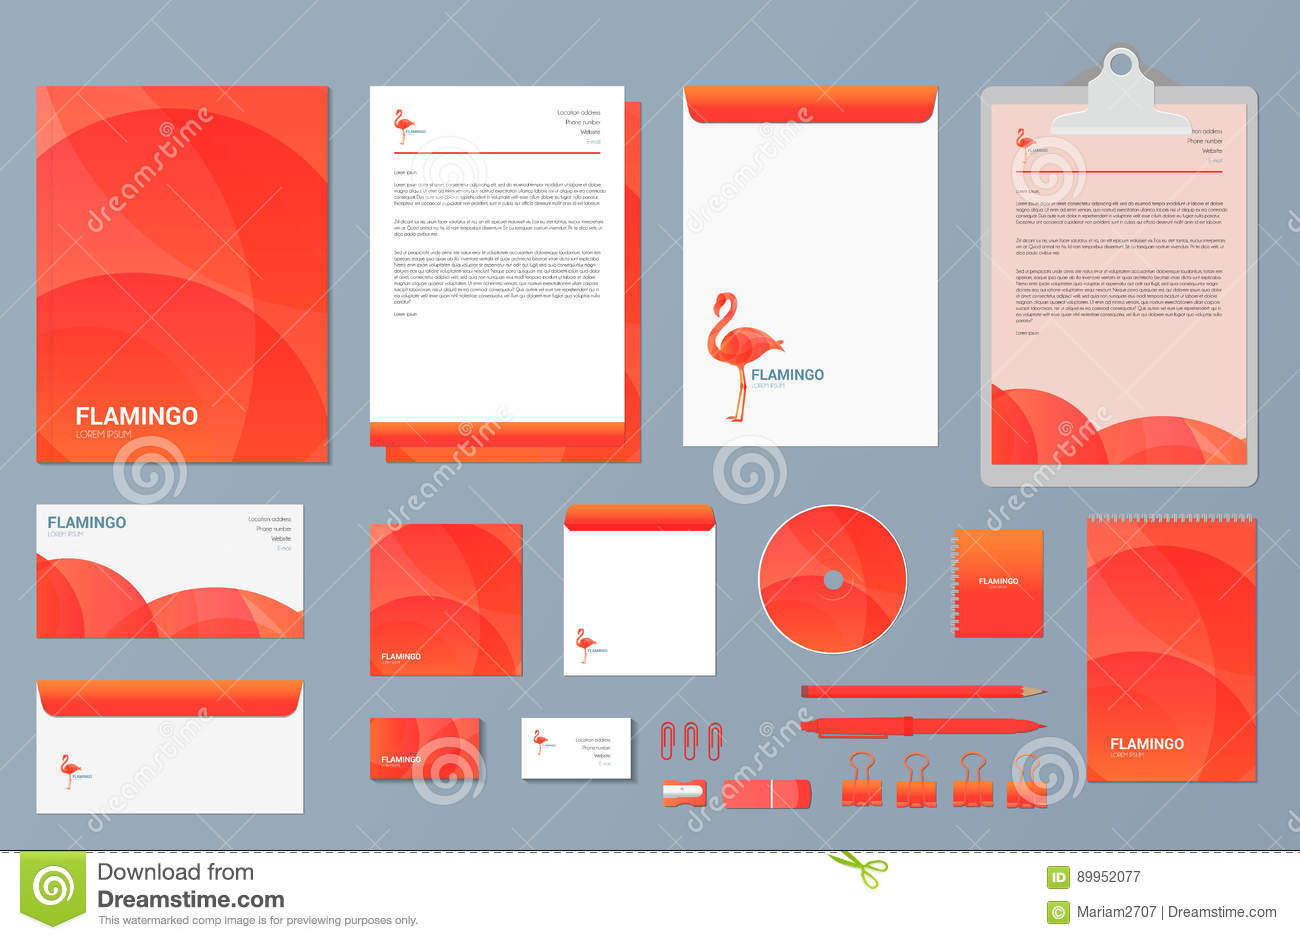 flamingo set of business stationery corporate branding identity and